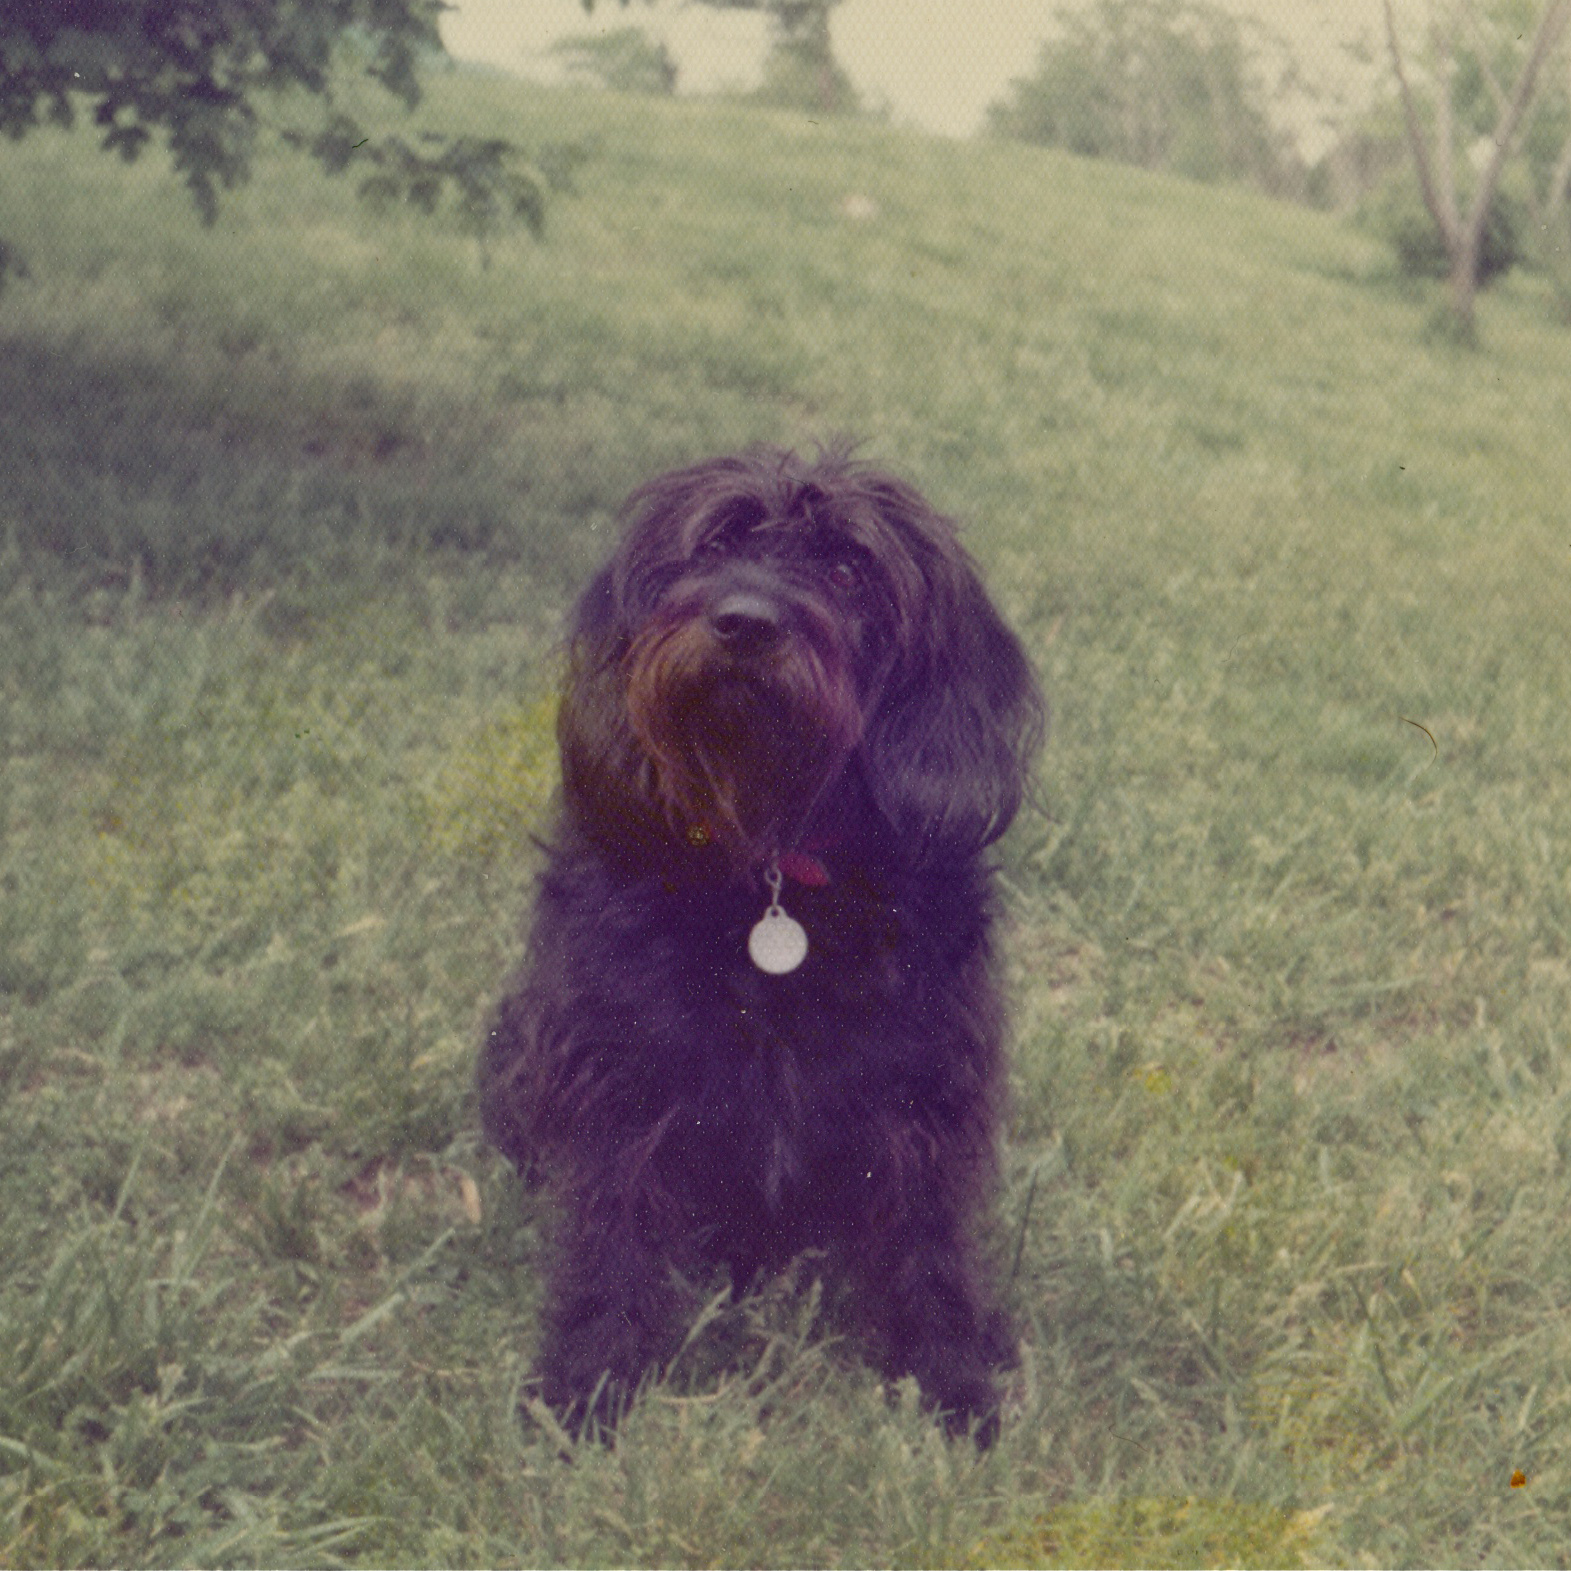 Dogs of yesterday from Life with Dogs and Cats: Twinkle (1969-1980)